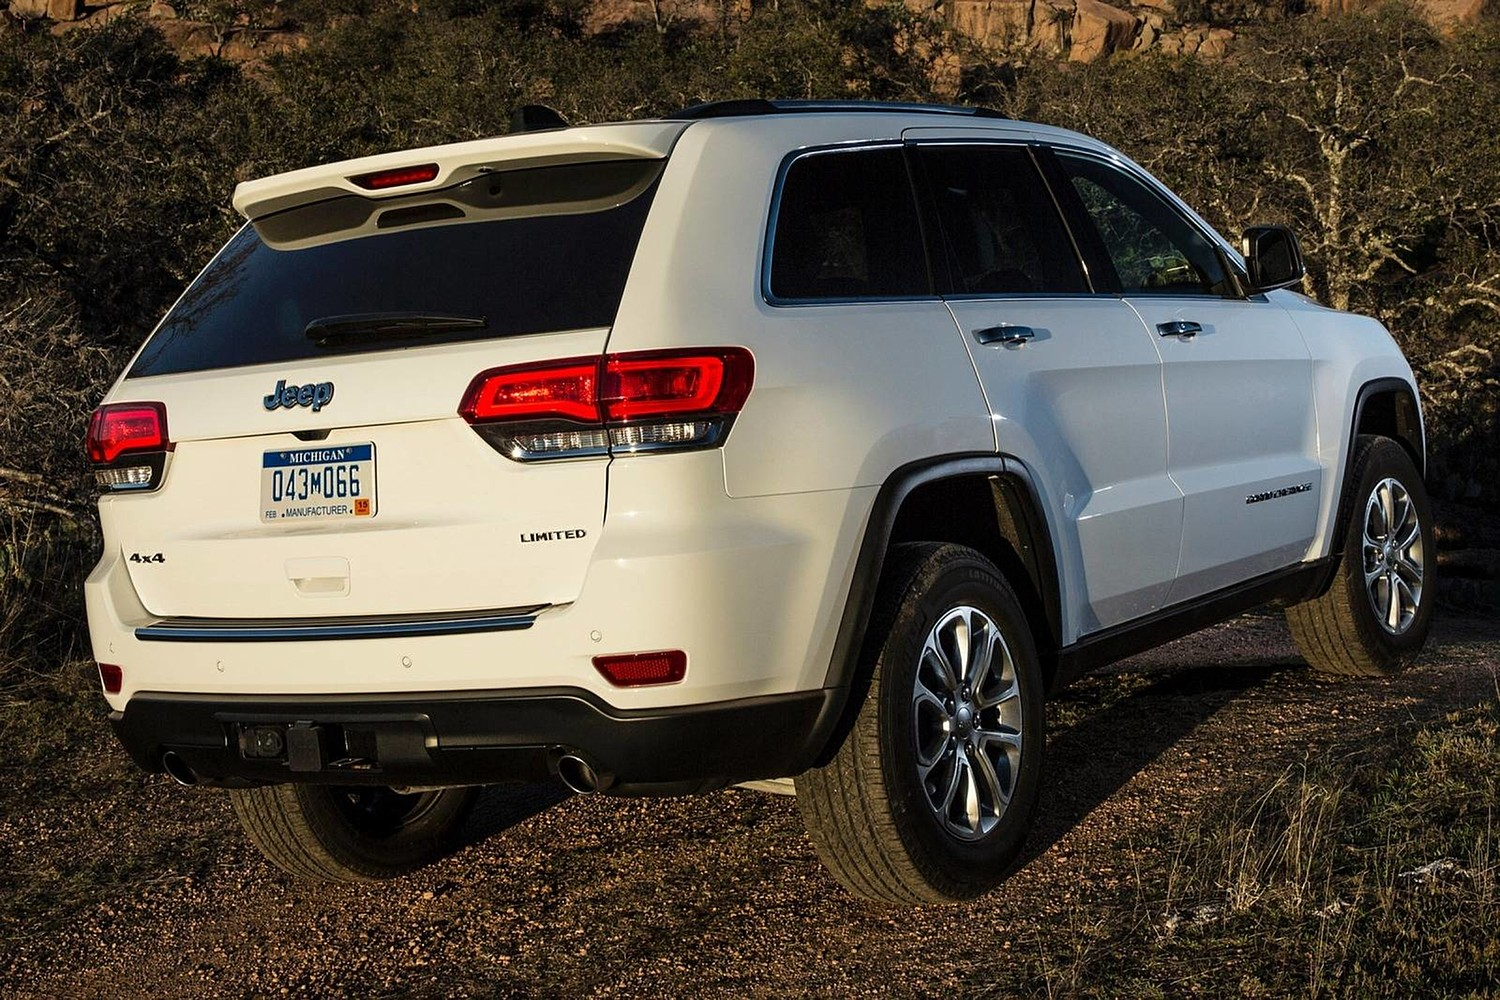 Jeep Grand Cherokee Limited 4dr SUV Exterior (2015 model year shown)